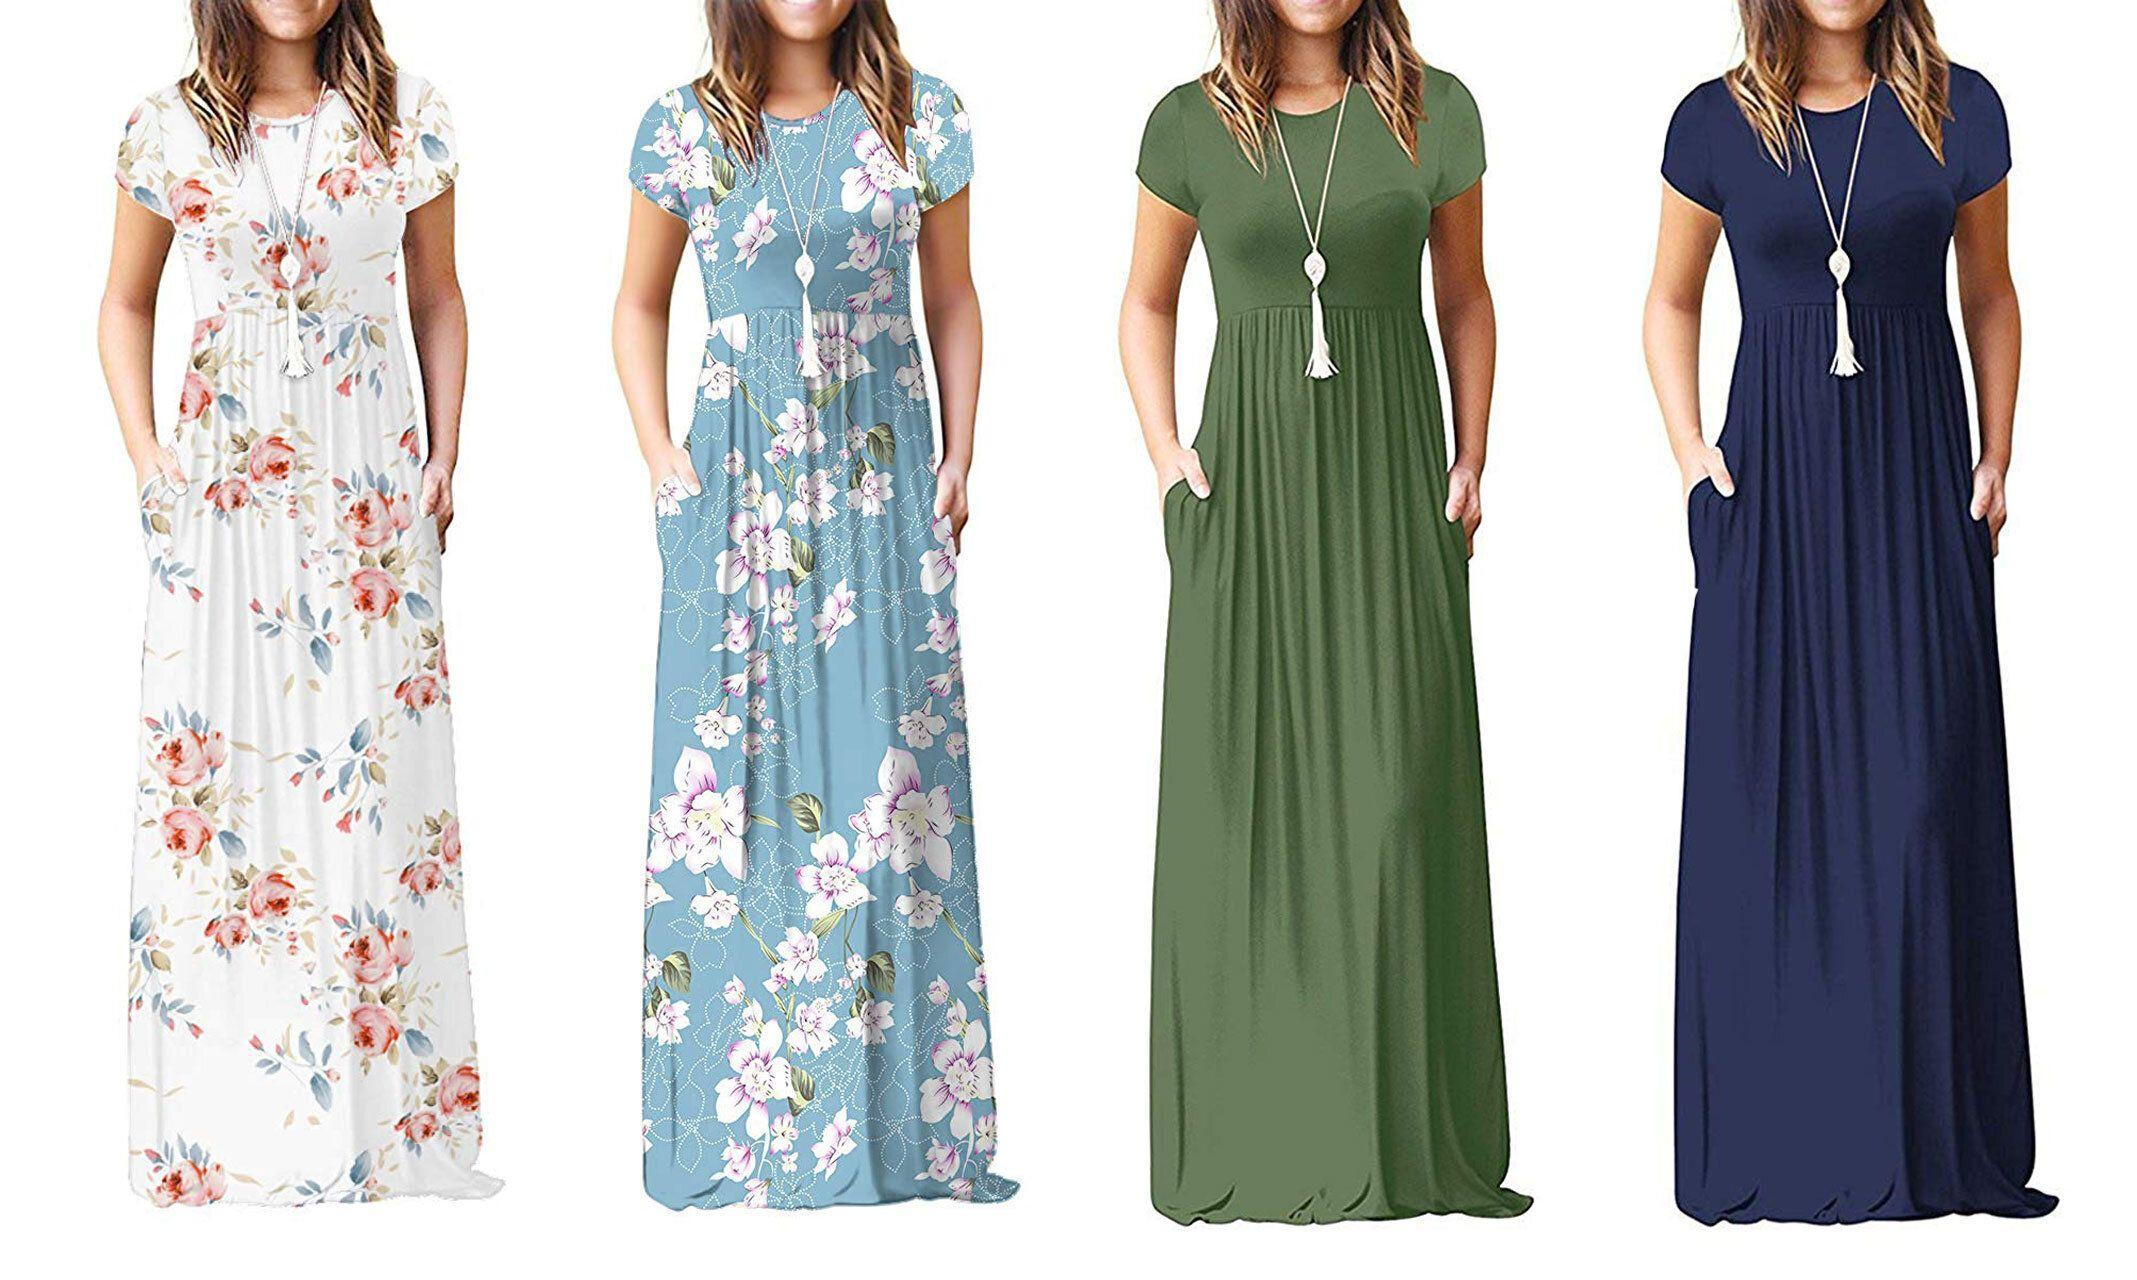 Flash sale: Fall's most 'perfect' maxi dress 'feels like pajamas' is just $21 for a few more hours